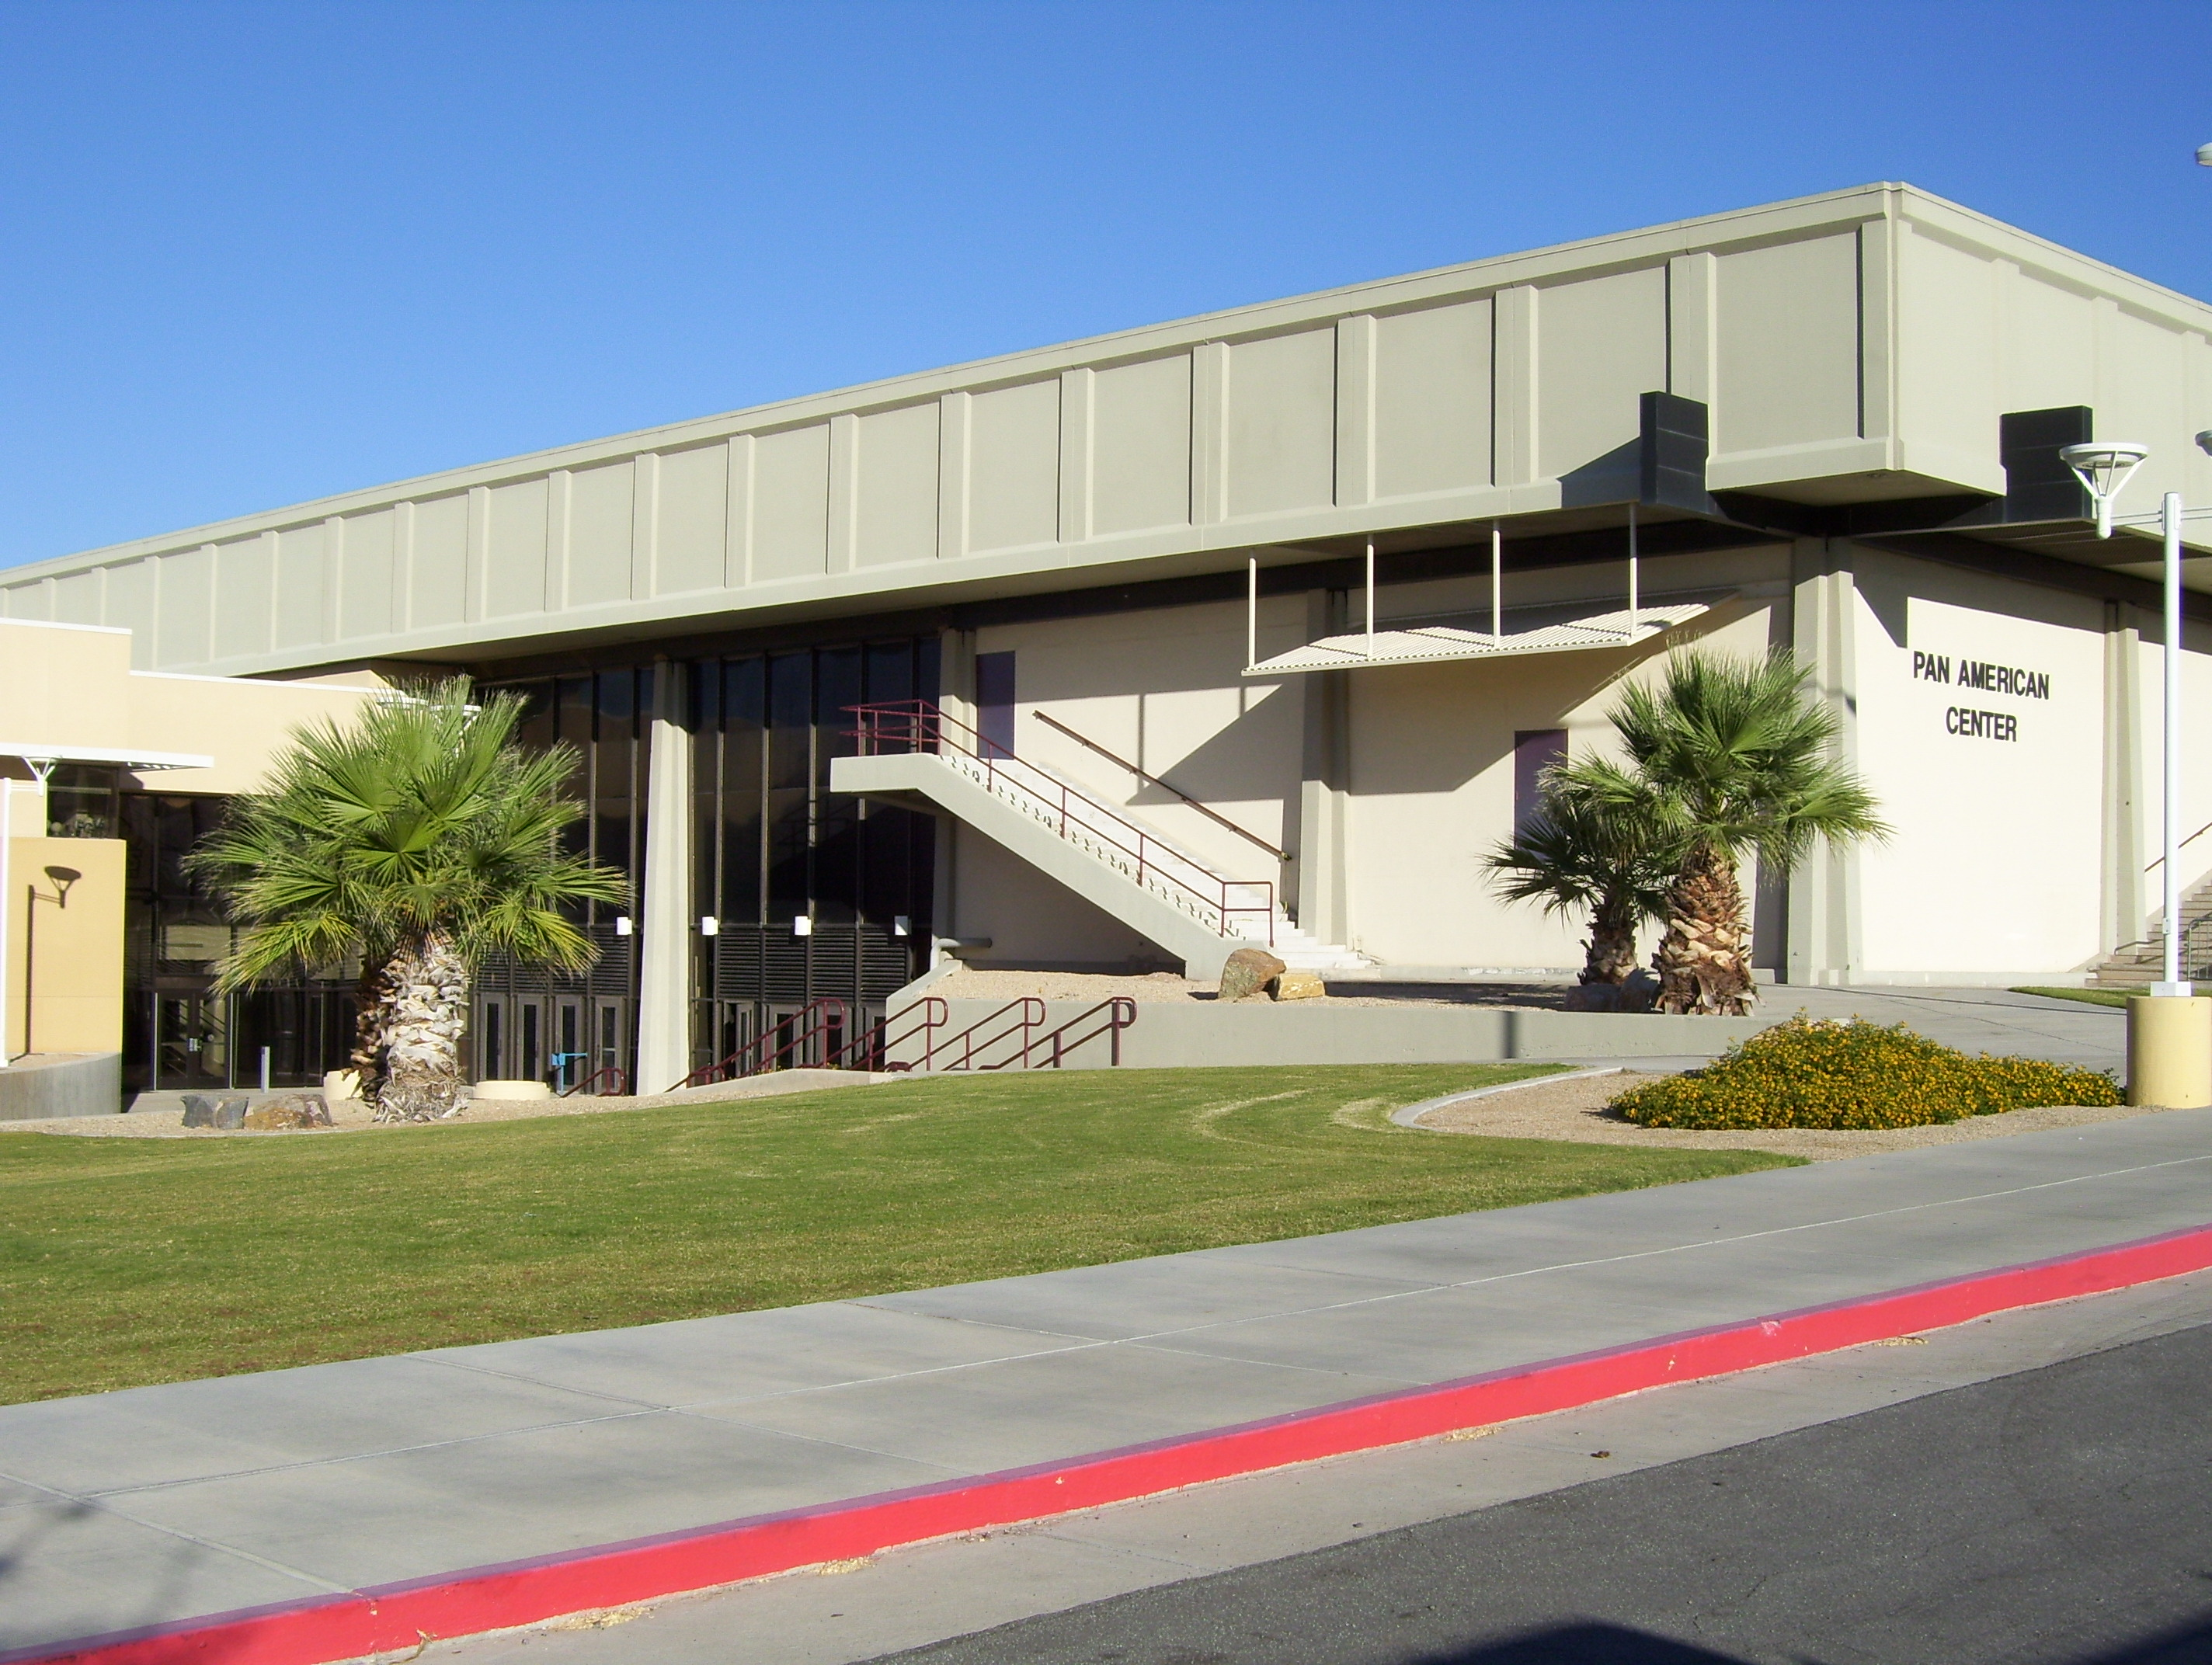 nmsu building map with 100 5670 on Roomsetup also Fitz in addition A Mazing University Of New Mexico C us Albuguerque further Index as well Up ing Events.